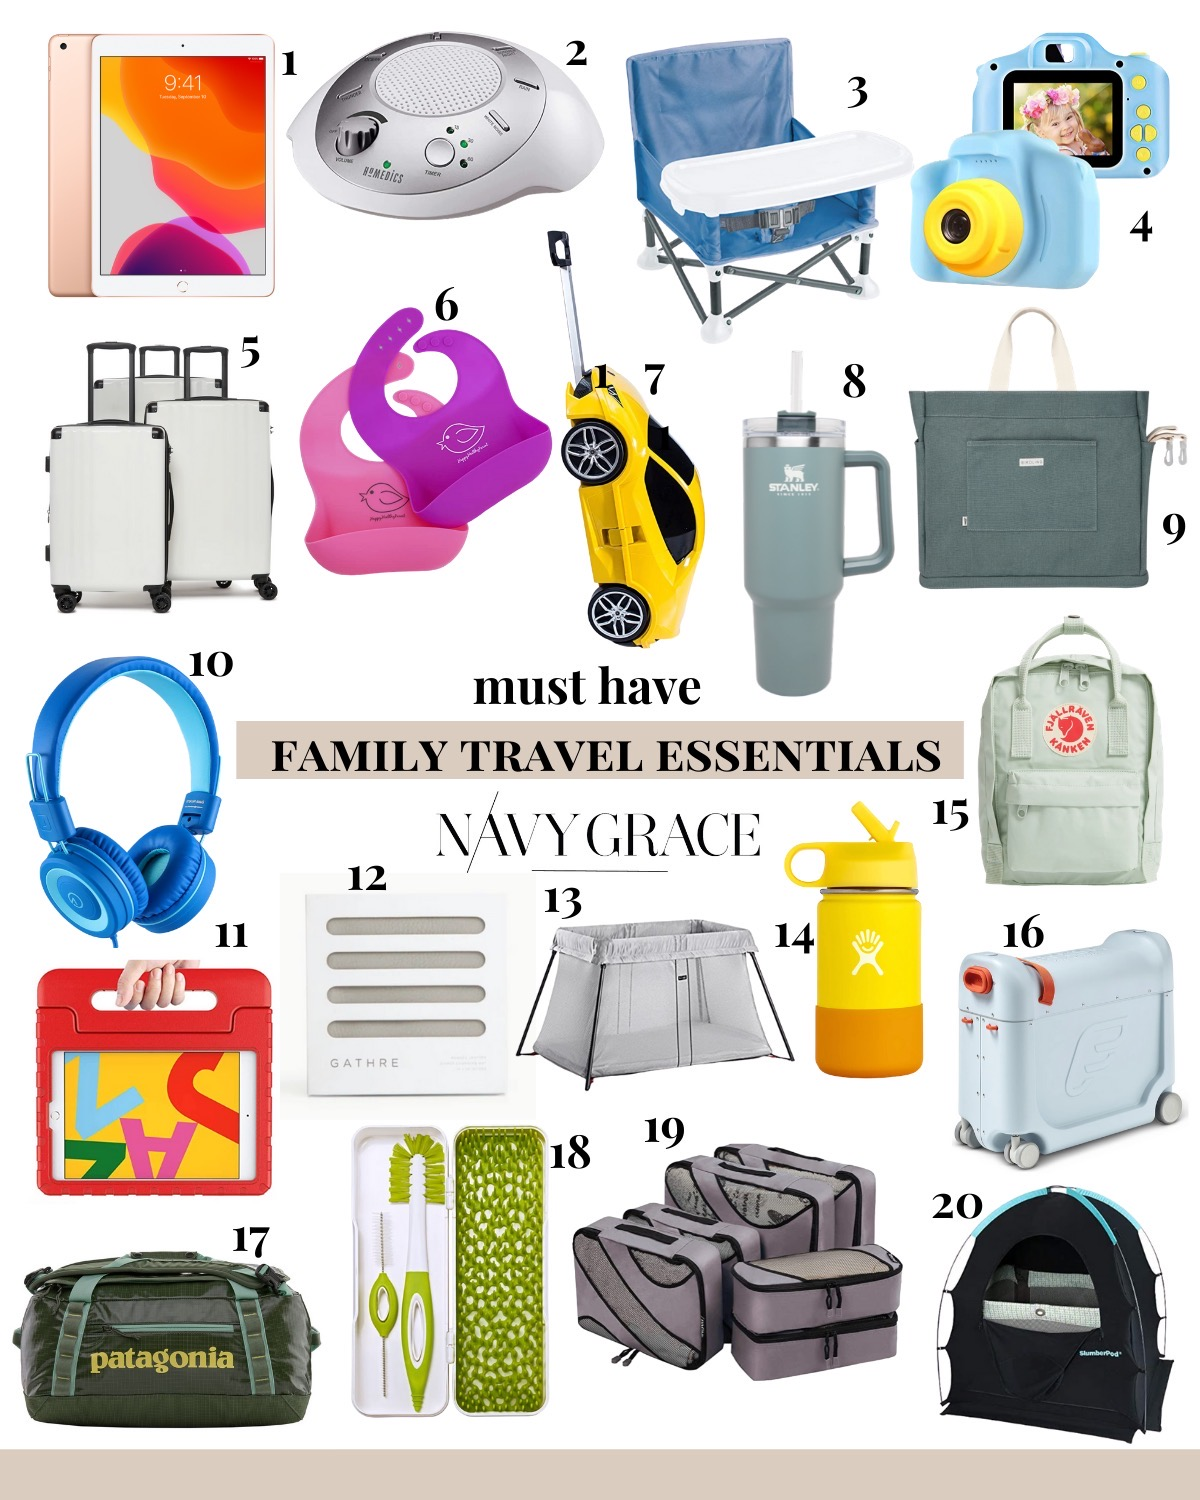 Family Travel by popular San Diego motherhood blog, Navy Grace: collage image of a Nordstrom 'Mini Kånken' Water Resistant Backpack FJÄLLRÄVEN, Nordstrom 40-Liter Rolling Duffle Bag PATAGONIA, Amazon Summer Infant Summer Pop 'n Sit Portable Booster Chair, iPad, white noise sound machine, Amazon VATENIC Kids Camera, Nordstrom Ambeur 3-Piece Metallic Luggage Set CALPAK, Amazon Happy Healthy Parent Silicone Baby Bibs, Amazon Ridaz Lamborghini Carry-on Hand Luggage for kids, Stanley ADVENTURE QUENCHER TRAVEL TUMBLER, Birdling Day Tripper, Amazon noot products K11 Foldable Stereo Tangle-Free 3.5mm Jack Wired Cord On-Ear Headset, Amazon BMOUO Kids Case for iPad, Amazon BABYBJORN Travel Crib Light, Amazon Hydro Flask 12 oz Kids Water Bottle, Jetkids by Stokke Bedbox® Ride-On Carry-On Suitcase, Amazon Boon Trip Travel Drying Rack for Baby Bottles and Brushes, Amazon Bagail 6 Set Packing Cubes,3 Various Sizes Travel Luggage Packing Organizers, SlumberPod Privacy Pod for Traveling with Babies and Toddlers, and Hydro Flask 8L Lunch Tote.